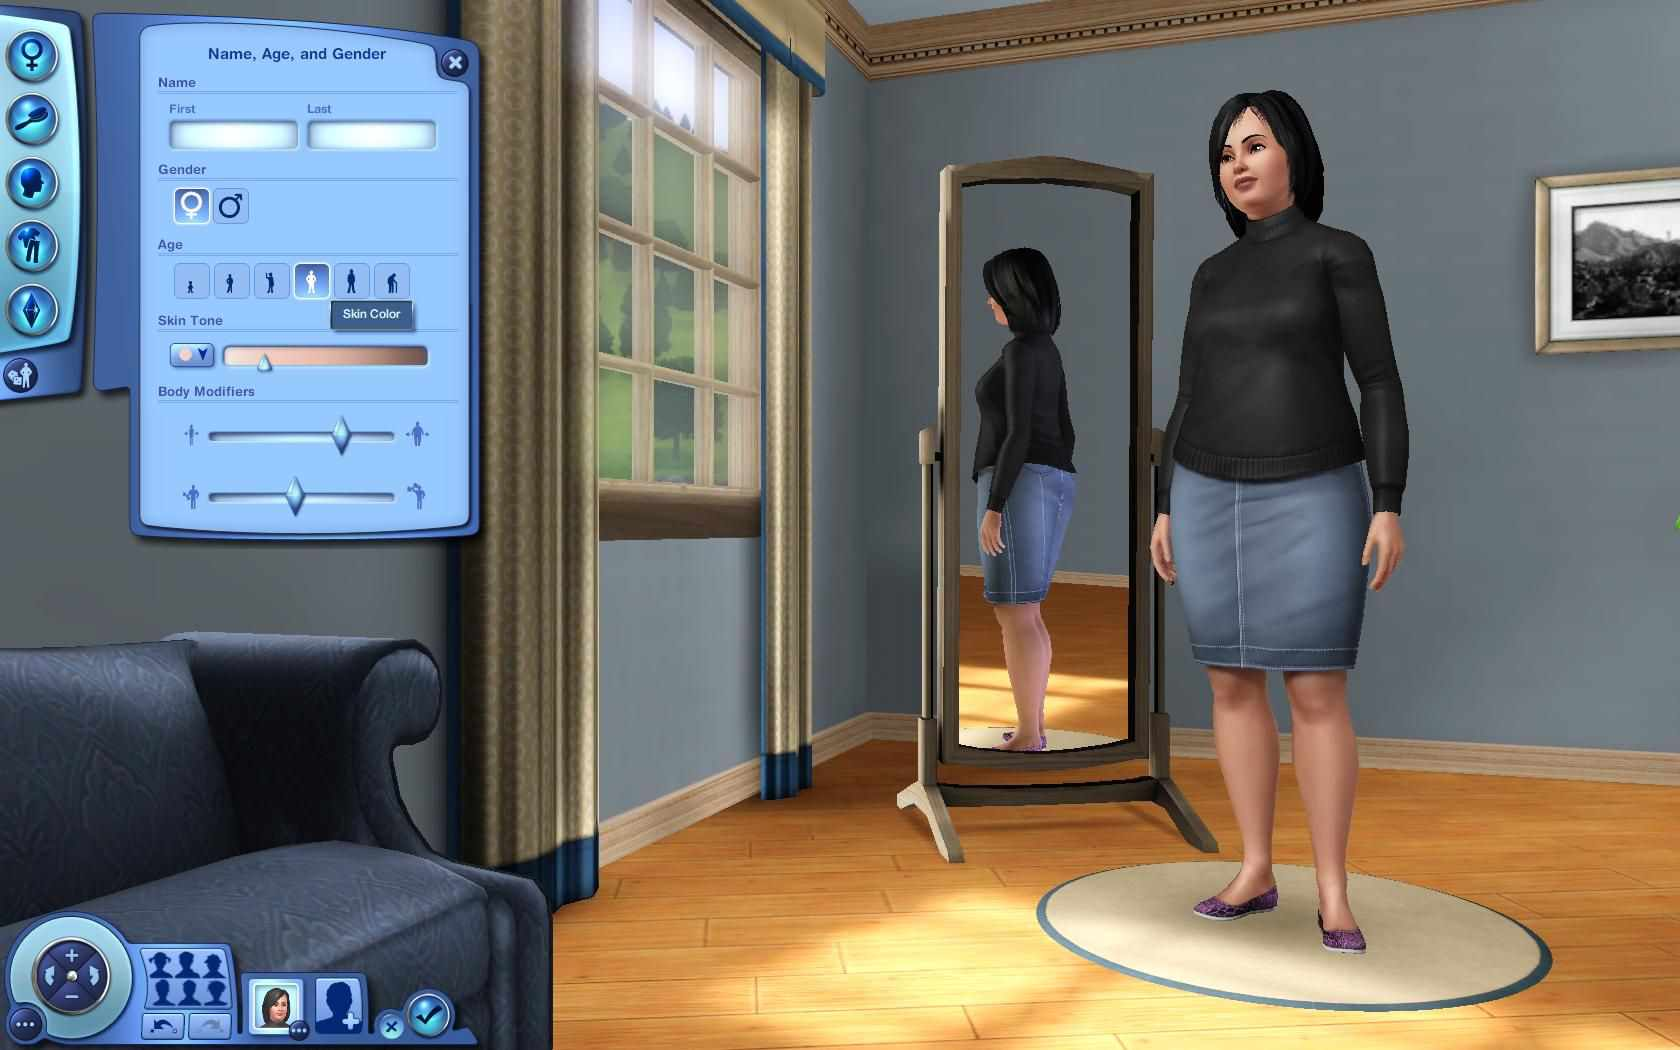 The Sims 3 Rom